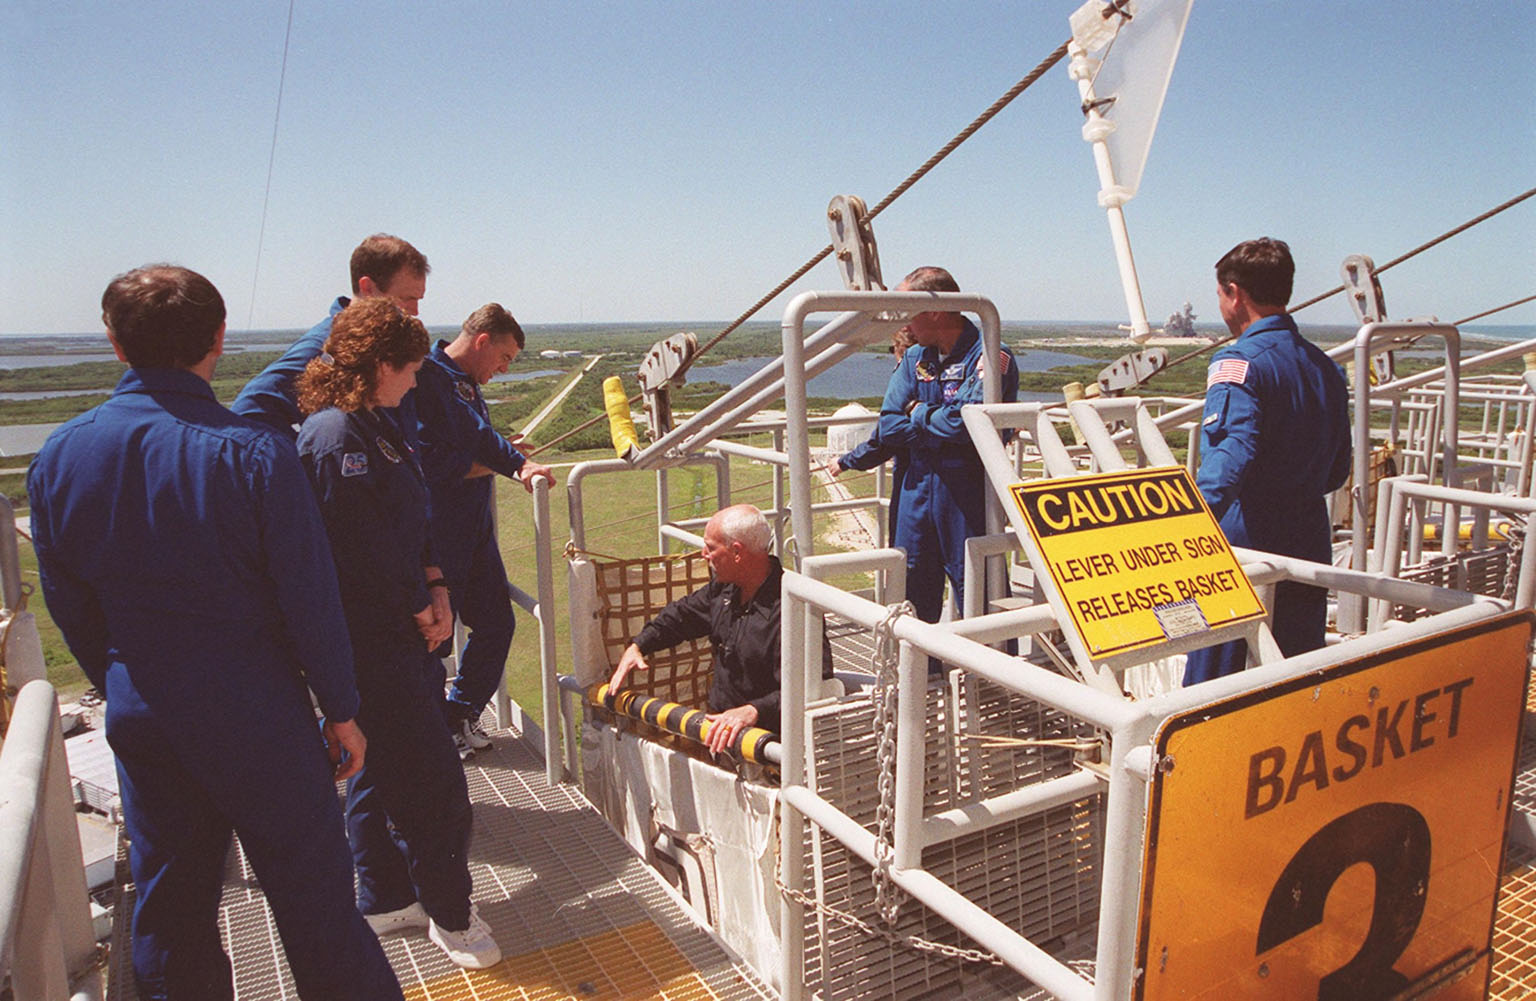 KENNEDY SPACE CENTER, Fla. -- At the 195-foot level of the Fixed Service Structure on Launch Pad 39A, the STS-101 crew get instruction in emergency egress in a slidewire basket during a Terminal Countdown Demonstration Test (TCDT). From left are Mission Specialist Yury Usachev and Susan Helms; Commander James Halsell; Mission Specialists James Voss, Mary Ellen Weber standing behind Jeffrey Williams; and Pilot Scott Horowitz. During their mission to the International Space Station, the STS-101 crew will be delivering logistics and supplies, plus preparing the Station for the arrival of the Zvezda Service Module, expected to be launched by Russia in July 2000. Also, the crew will conduct one space walk to perform maintenance on the Space Station. This will be the third assembly flight for the Space Station. STS-101 is scheduled to launch April 24 at 4:15 p.m. from Launch Pad 39A